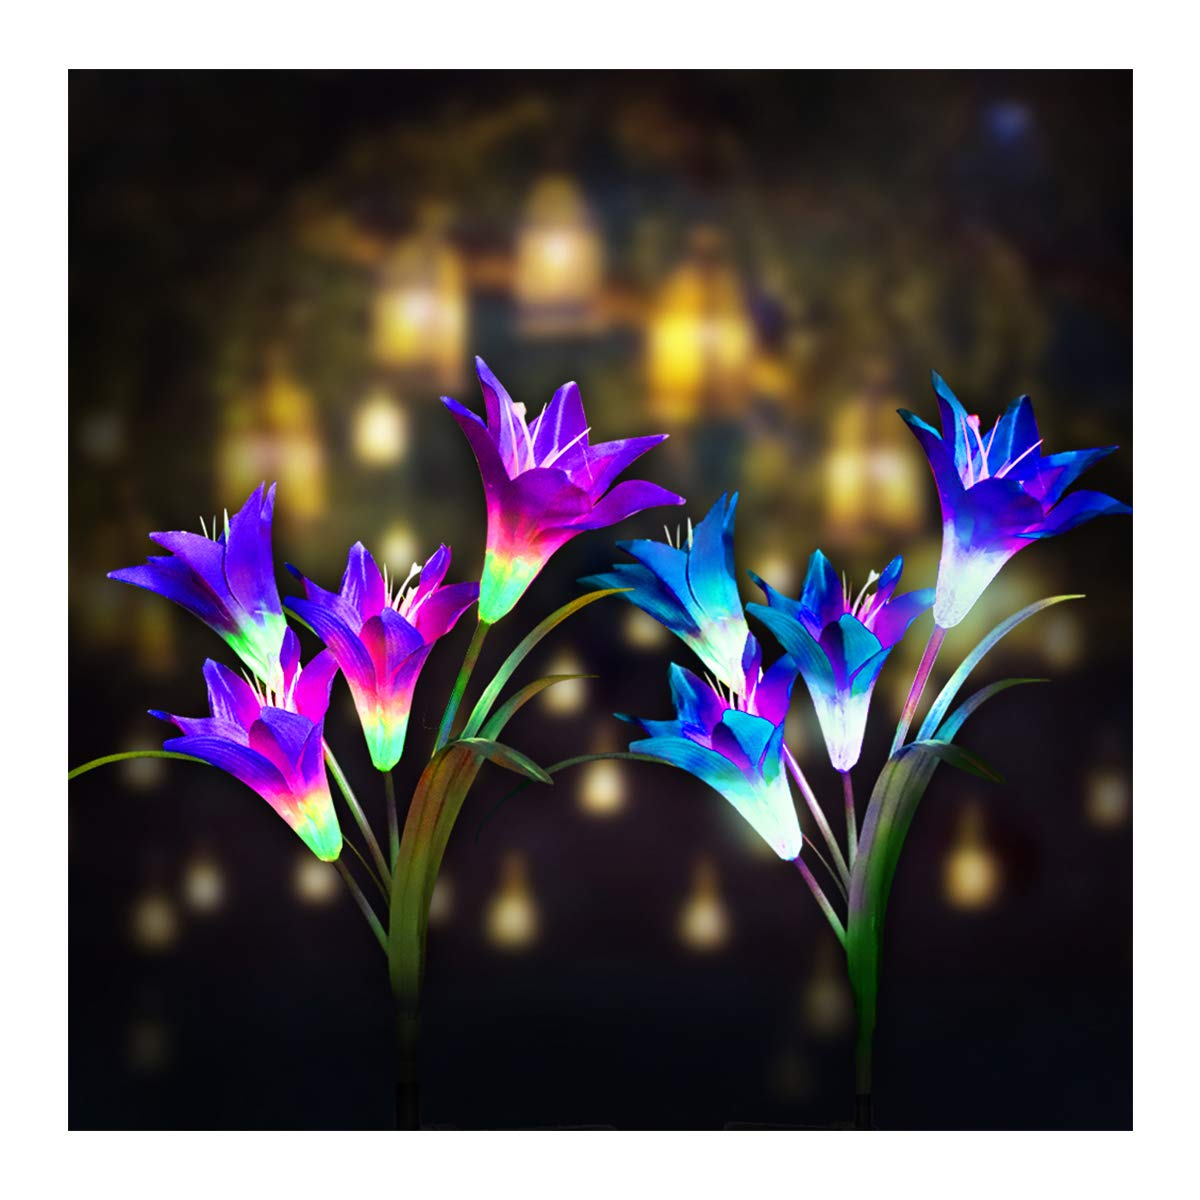 Digiroot Waterproof Outdoor Solar Garden Stake lights, 2 Packs Solar Powered Garden Lights with 8 Lily Flower , Multi-Color Changing LED Solar Stake Lights for Garden, Patio, Backyard Decor